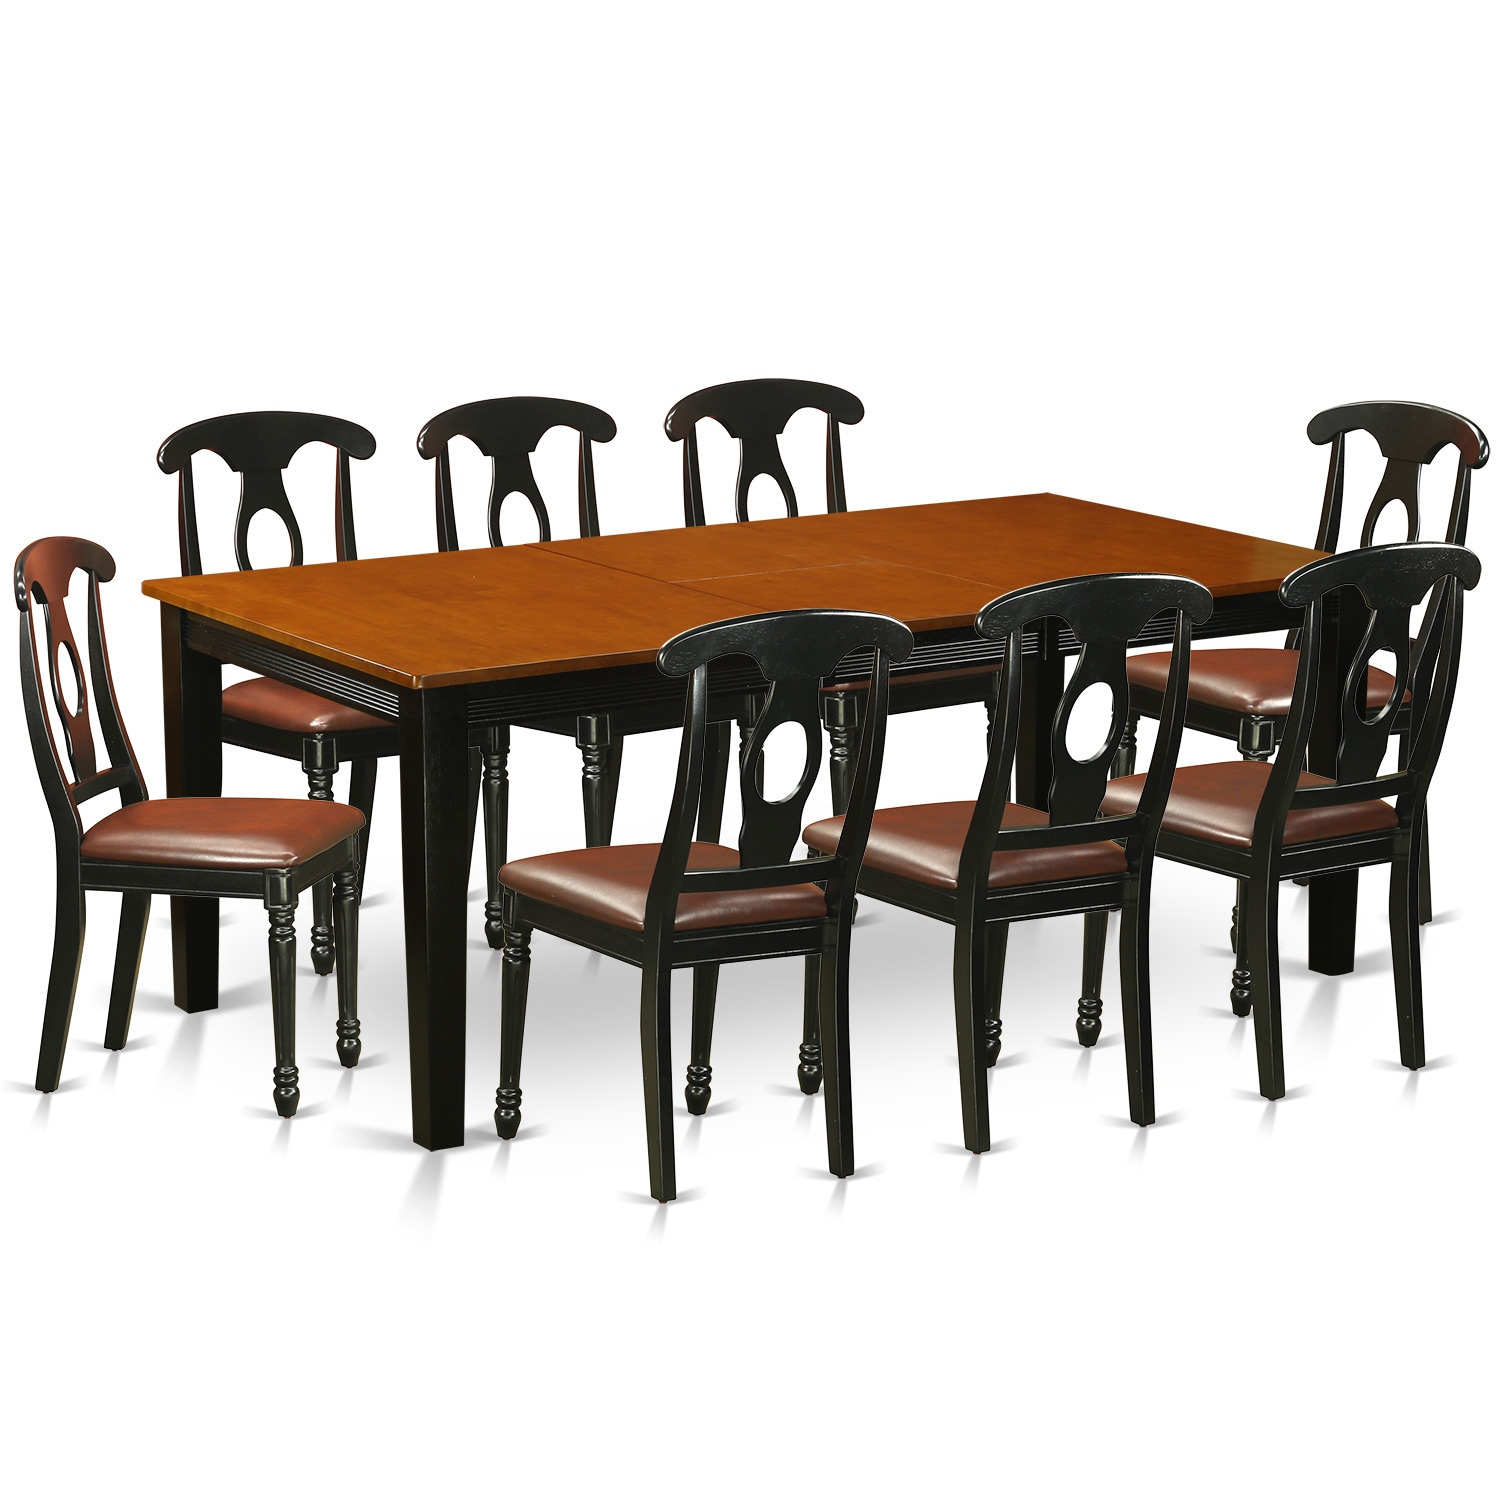 Shop black cherry finish rubberwood dining table with 8 dining chairs free shipping today overstock com 11967656